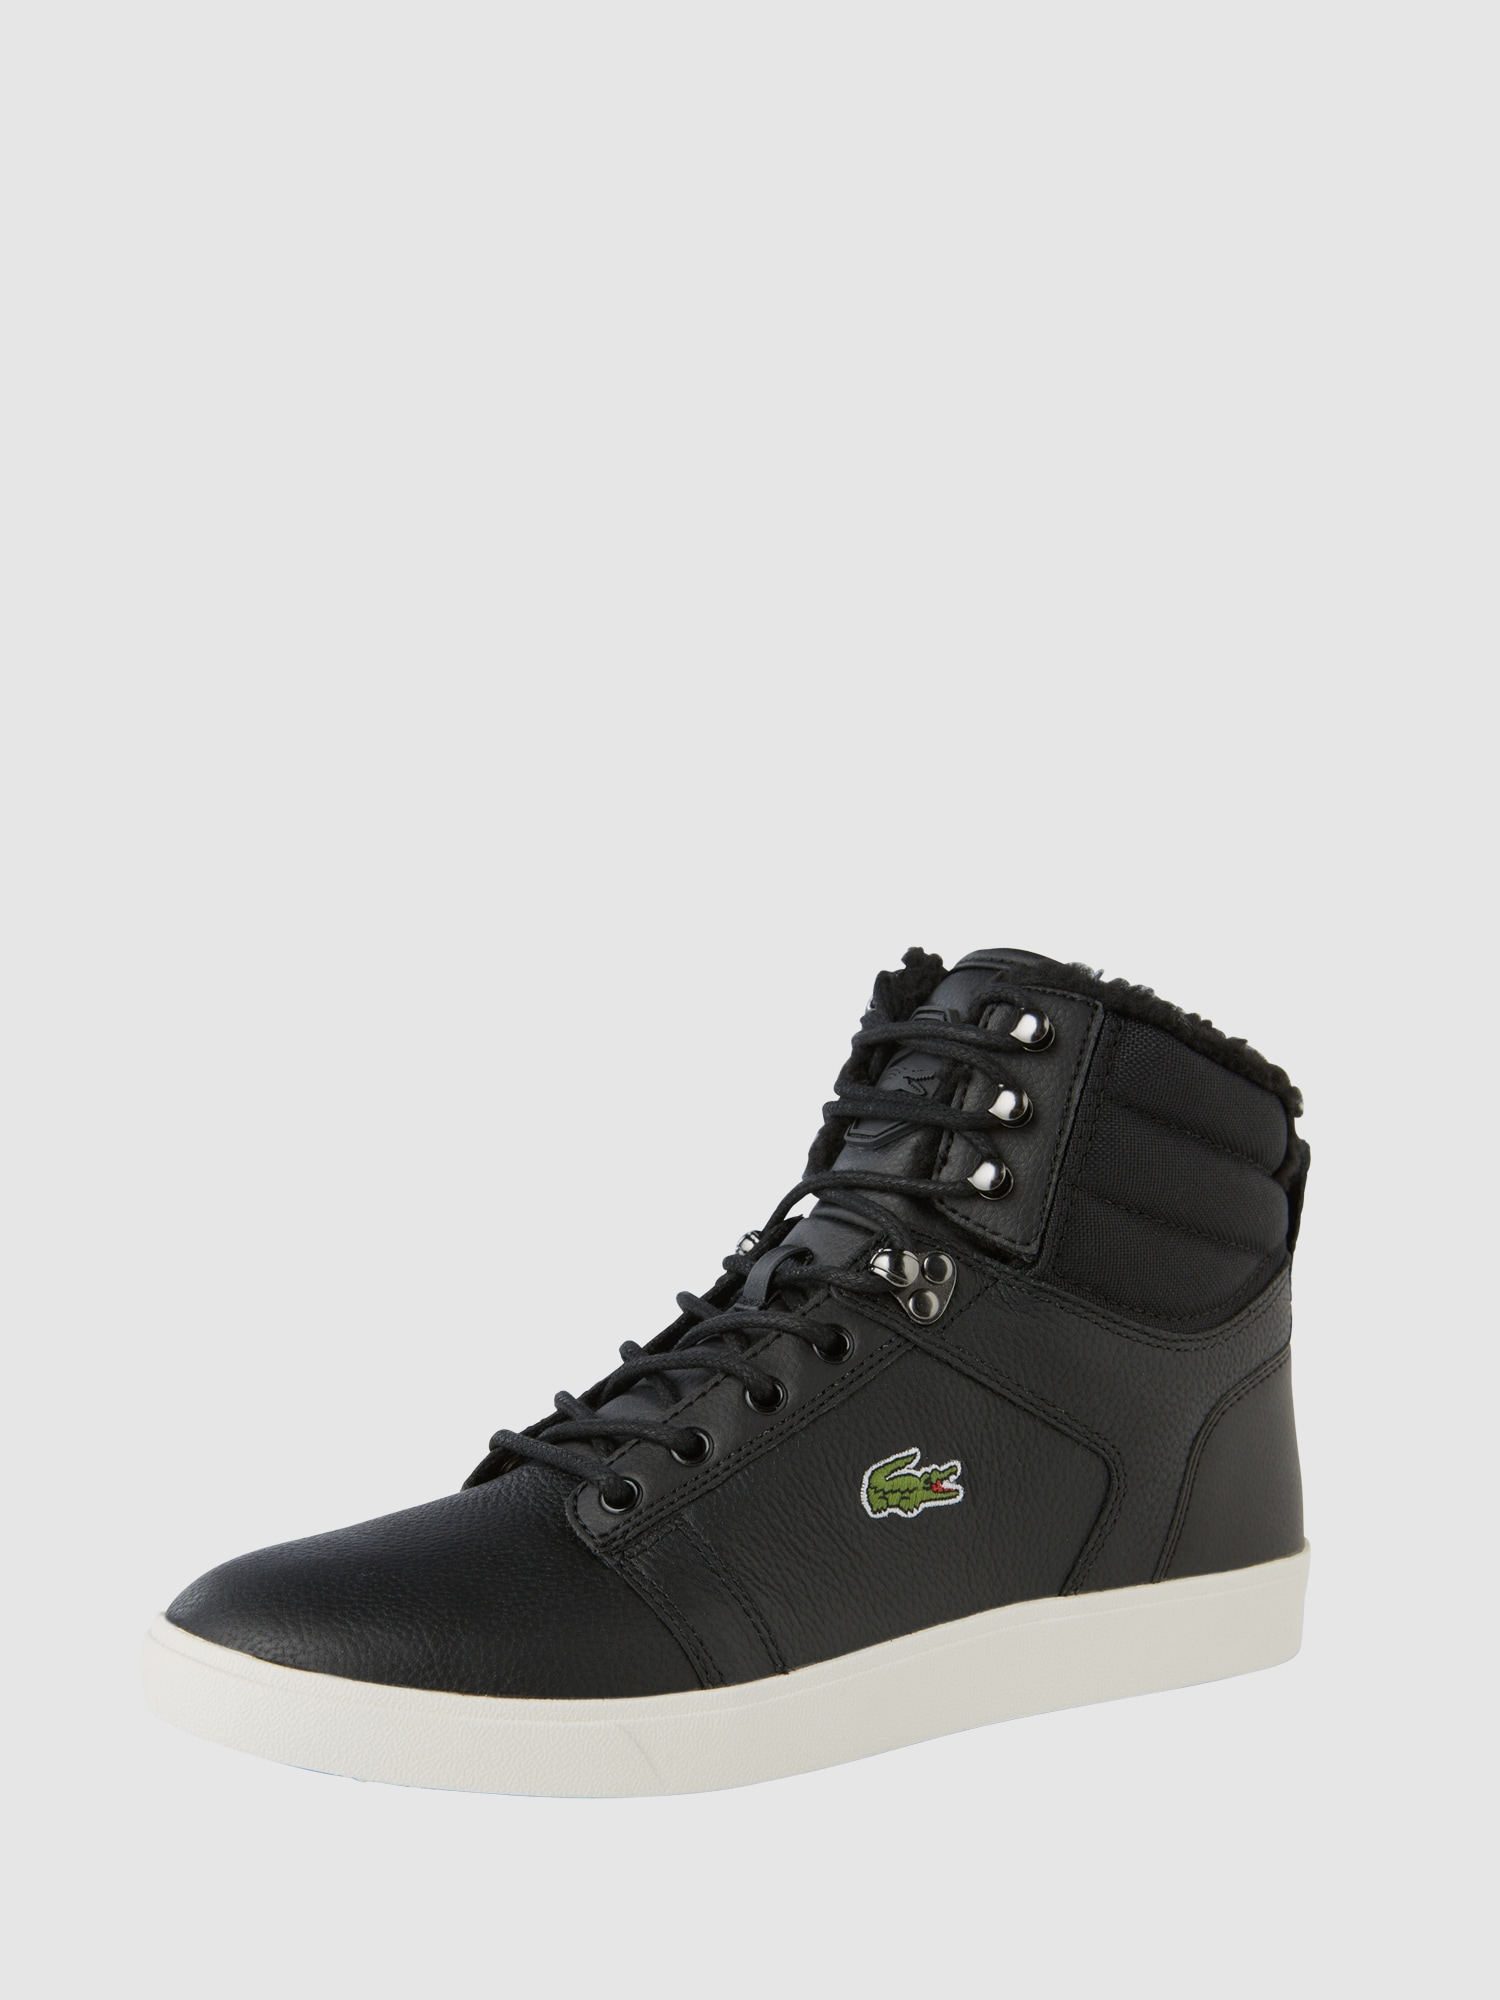 lacoste sneaker 39 orelle put spm 39 in schwarz about you. Black Bedroom Furniture Sets. Home Design Ideas